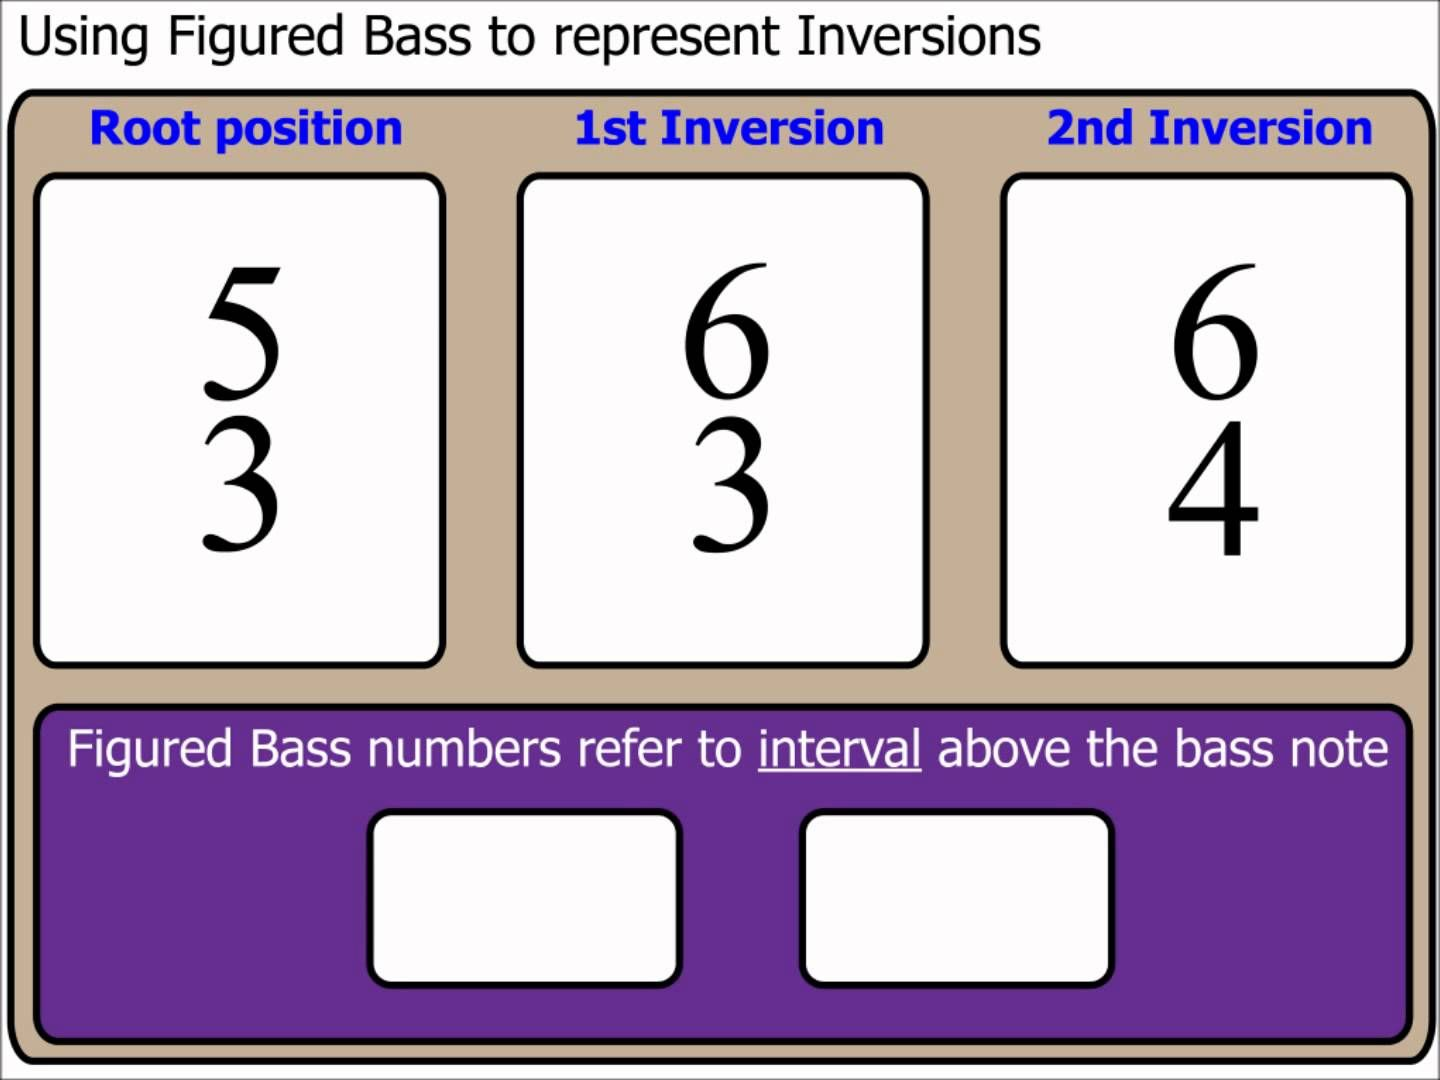 Chords Part 6 Using Figured Bass to represent Inversions